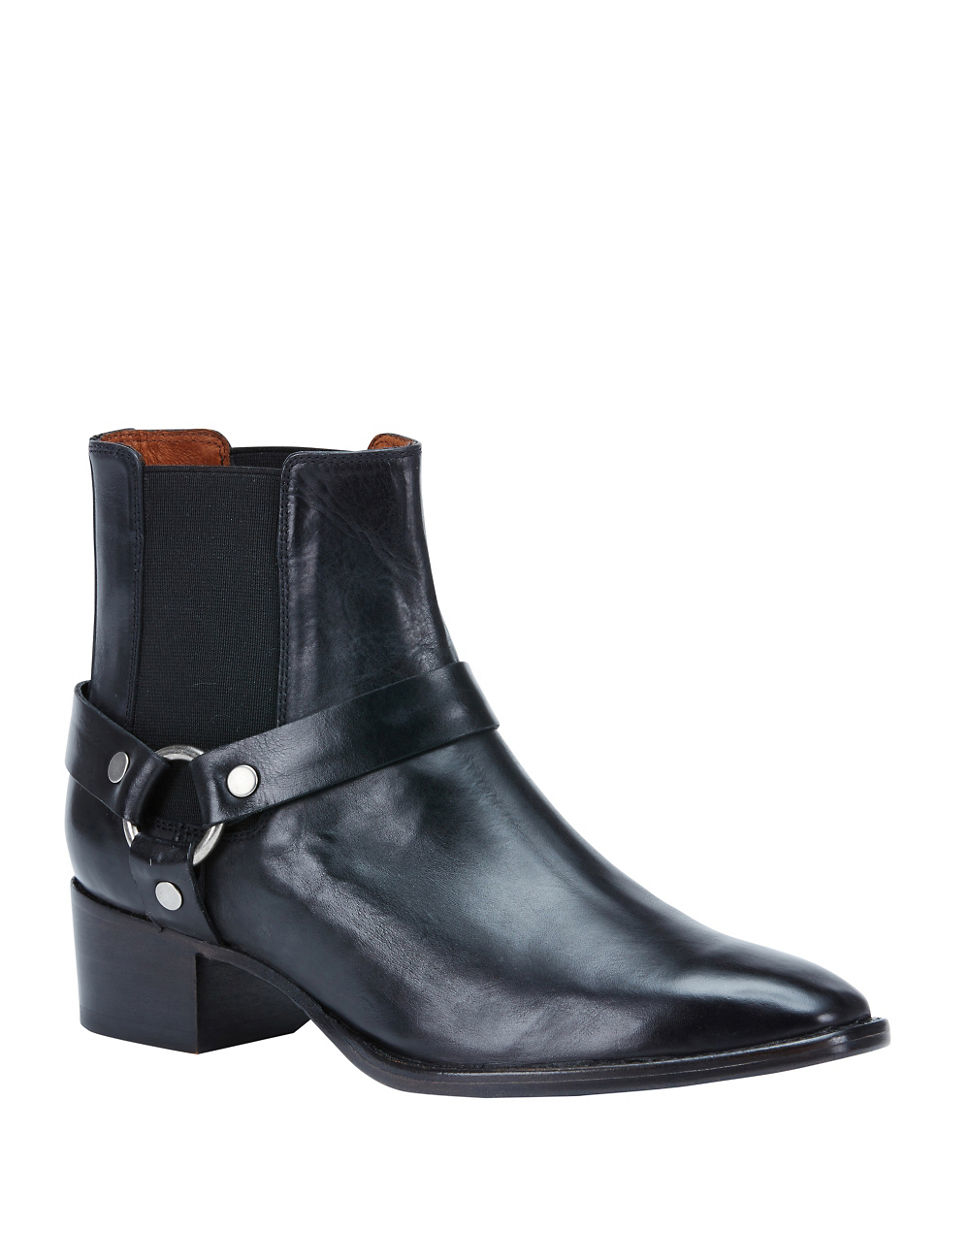 Shop Women's Lord & Taylor Boots on Lyst. Track over 72 Lord & Taylor Boots for stock and sale updates.